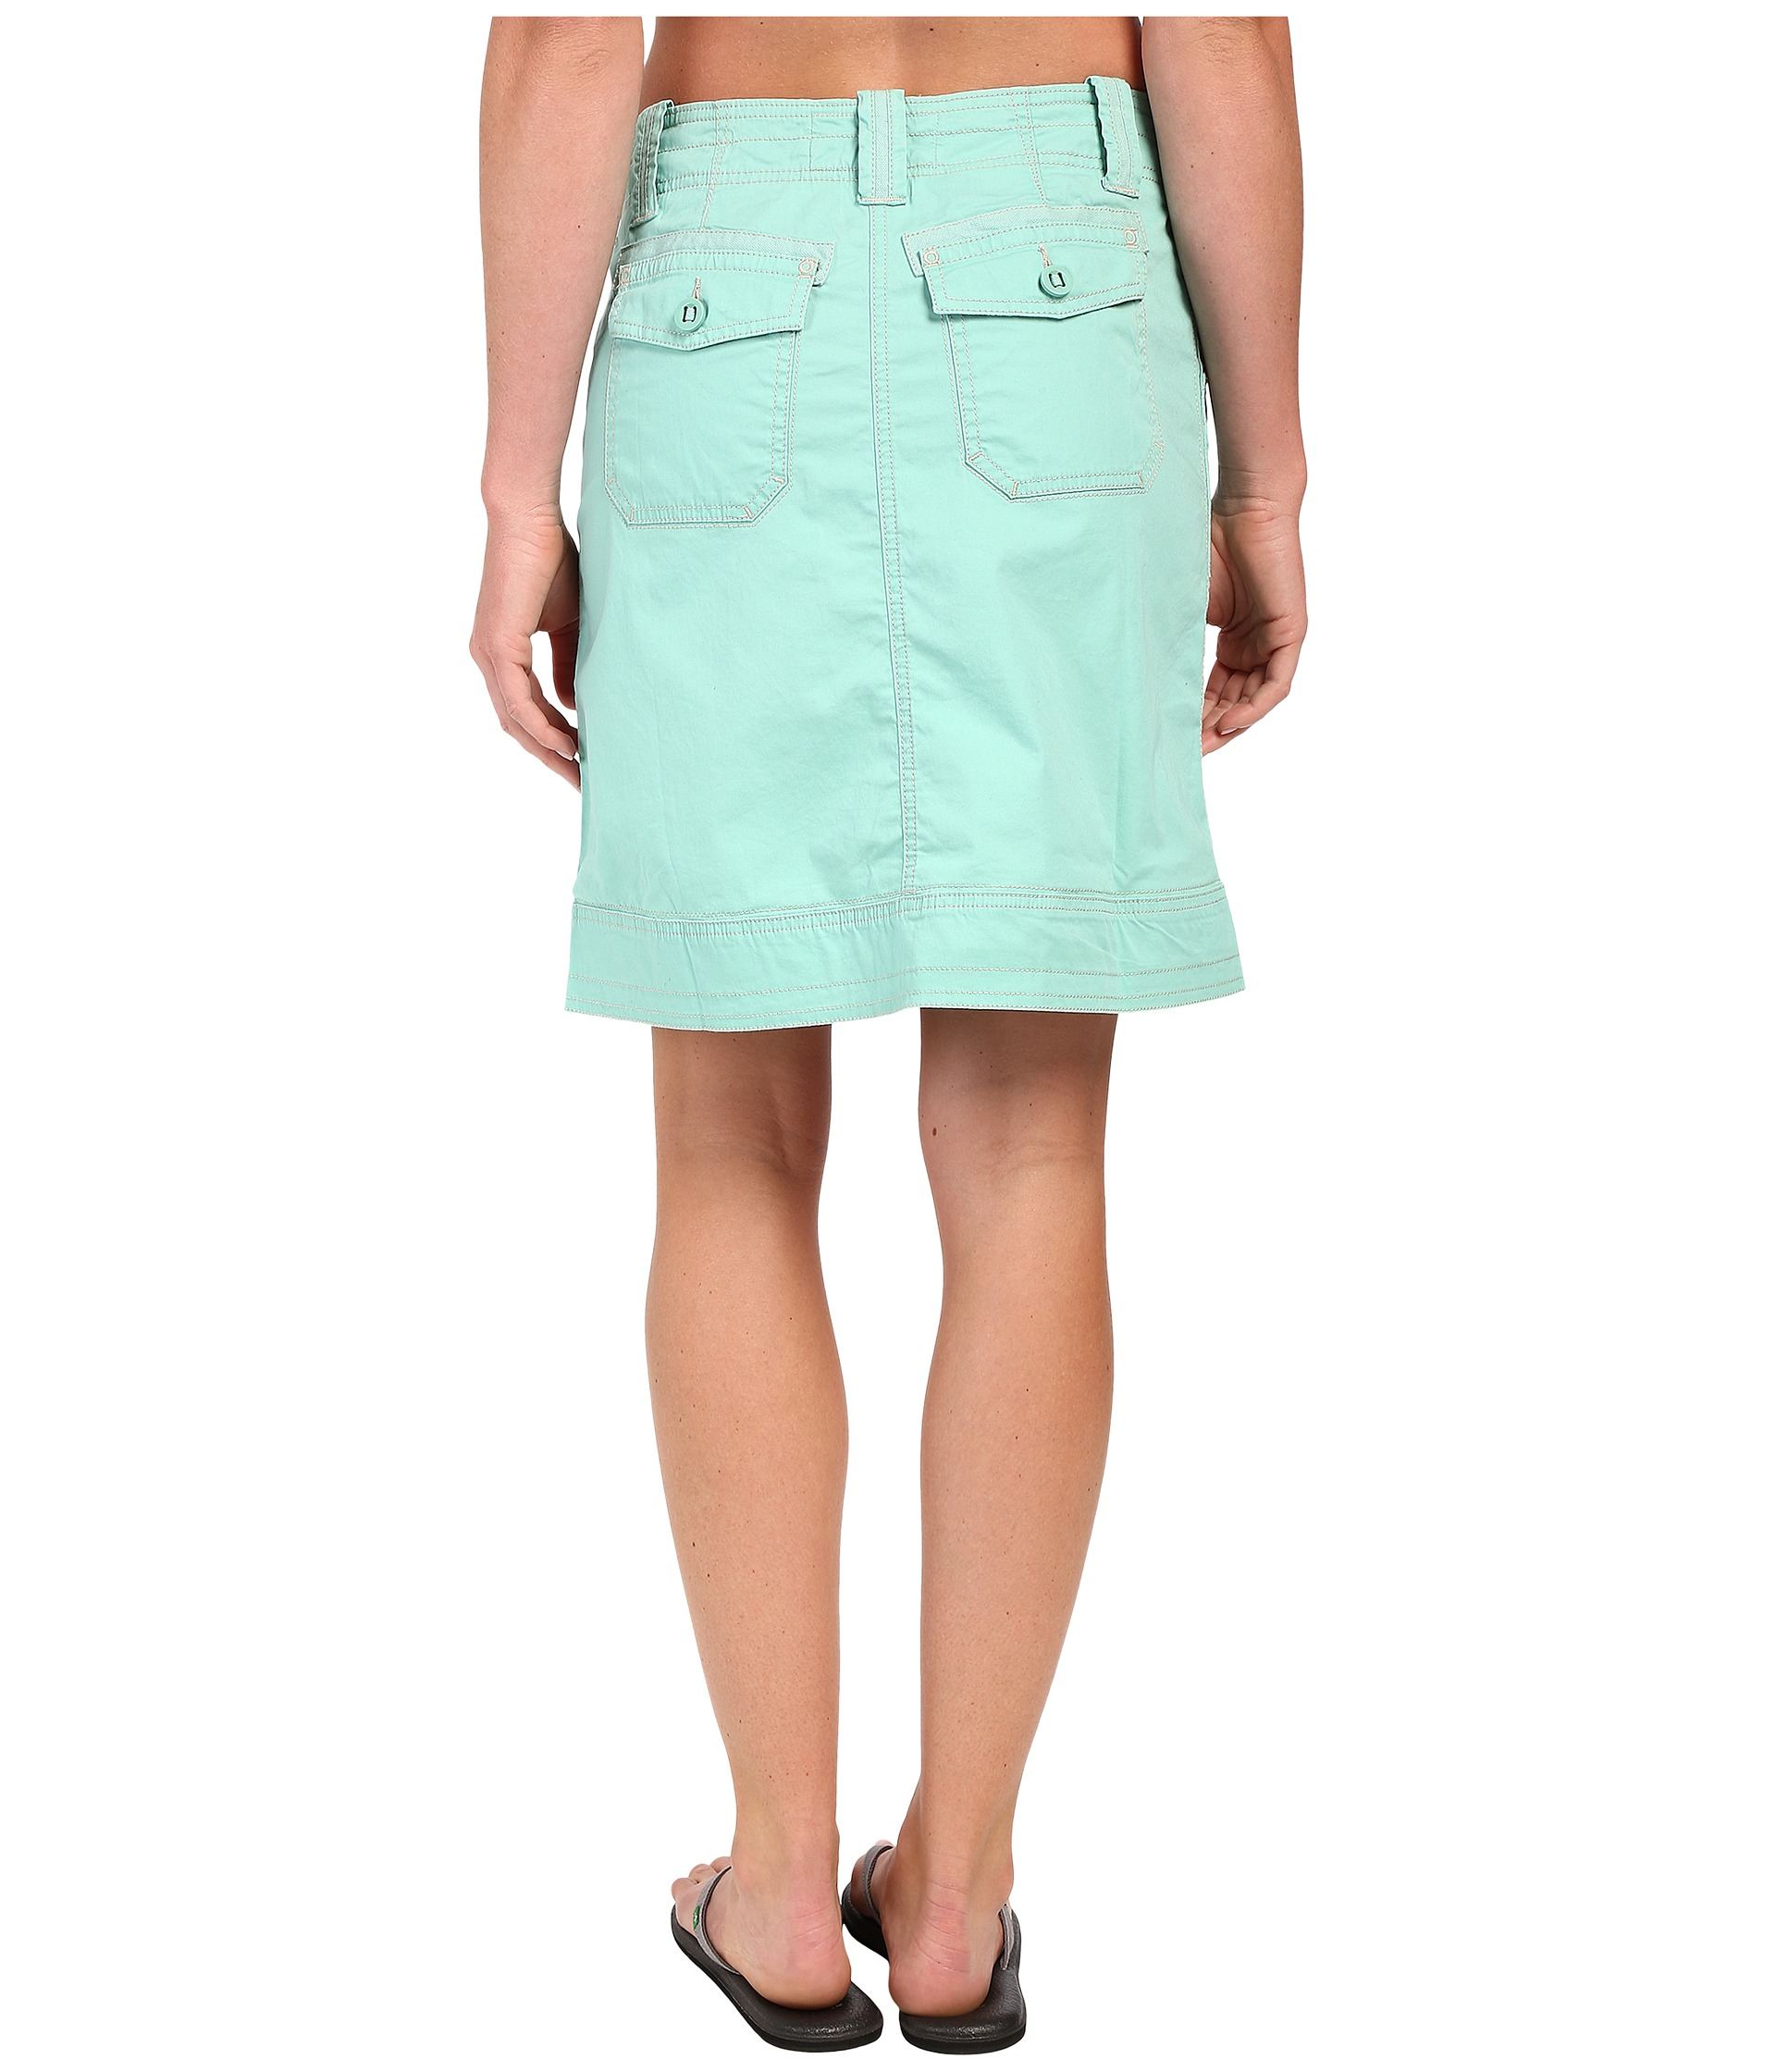 Arden B offers a full array of clothing styles for women. They produce a multitude of bottoms, including leggings, pants, jeans, shorts, and skirts as well as a variety of .